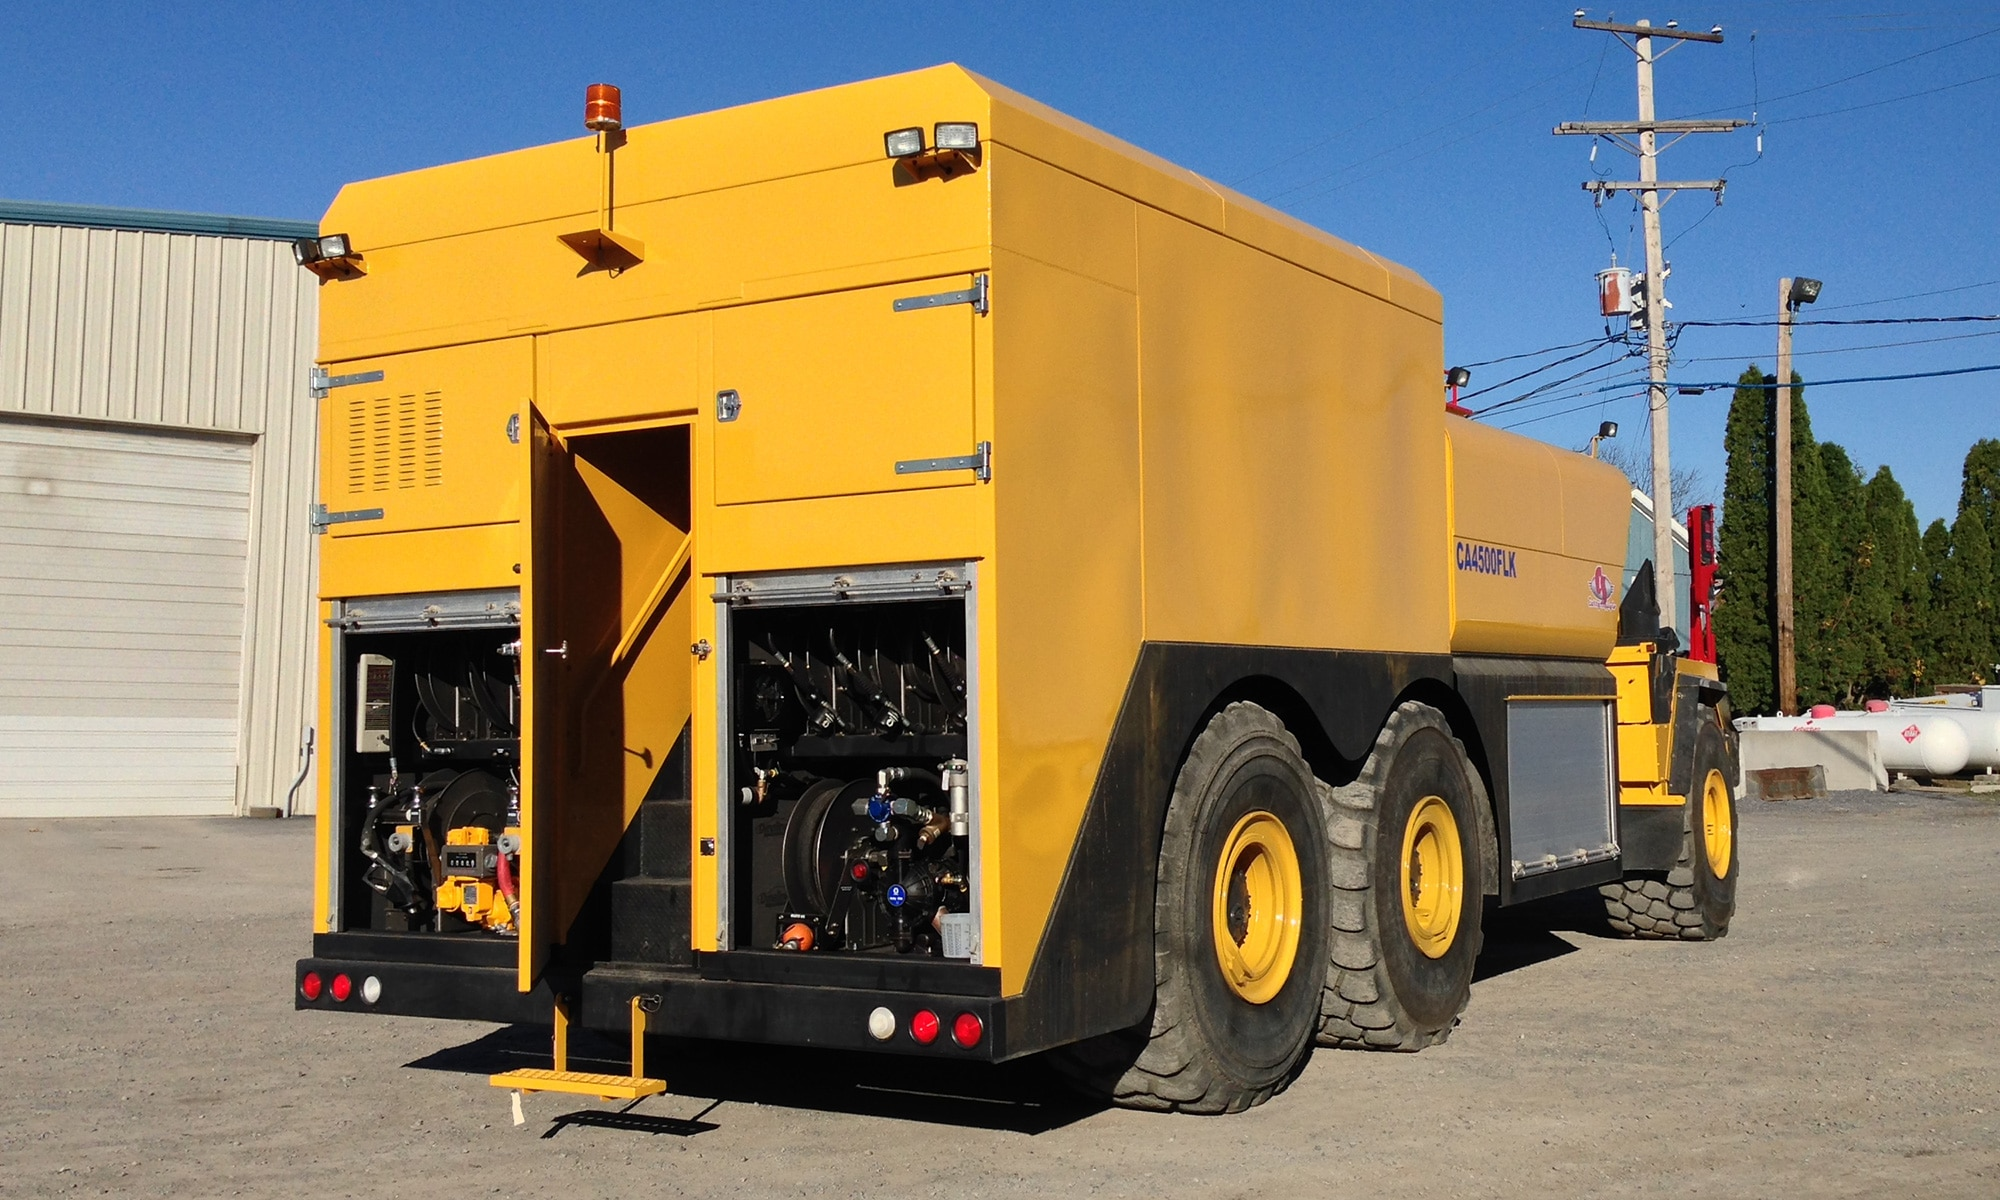 Off-Road Enclosed Fuel/Lube Truck